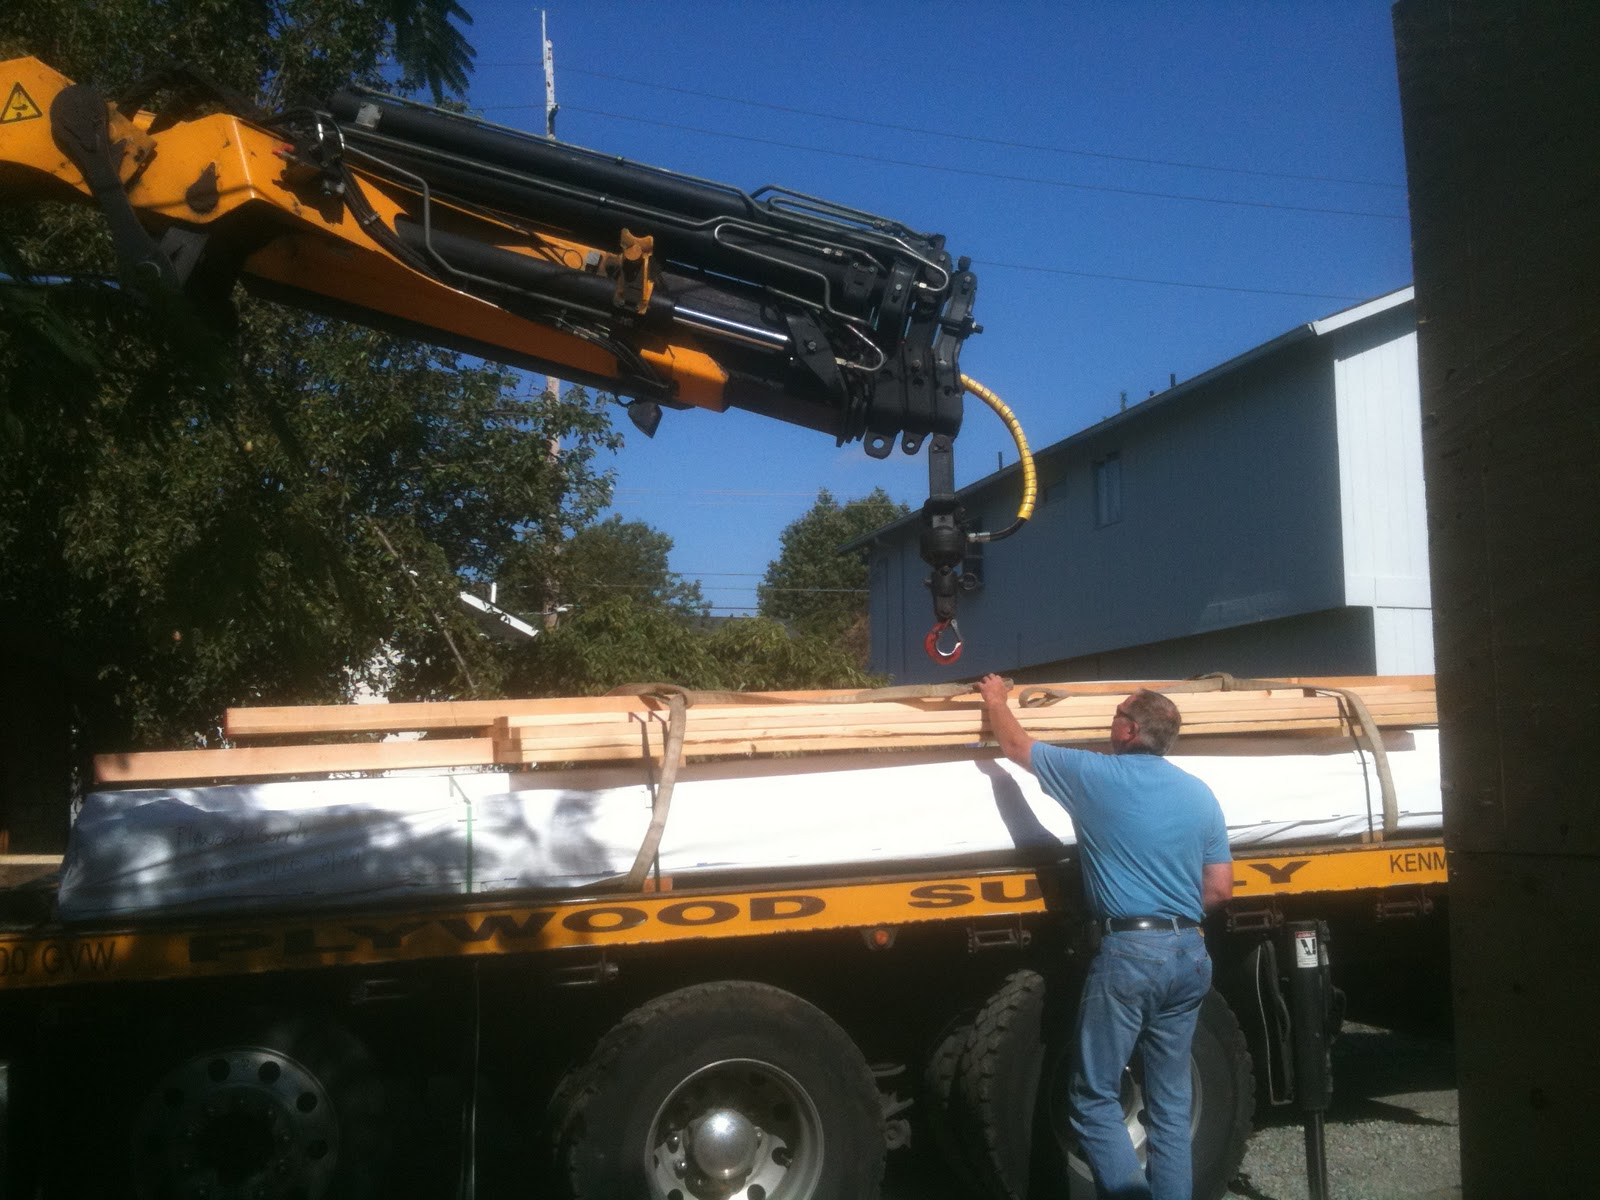 430 design/build: Week 8: Sheathing, CAD and the Steel Beam